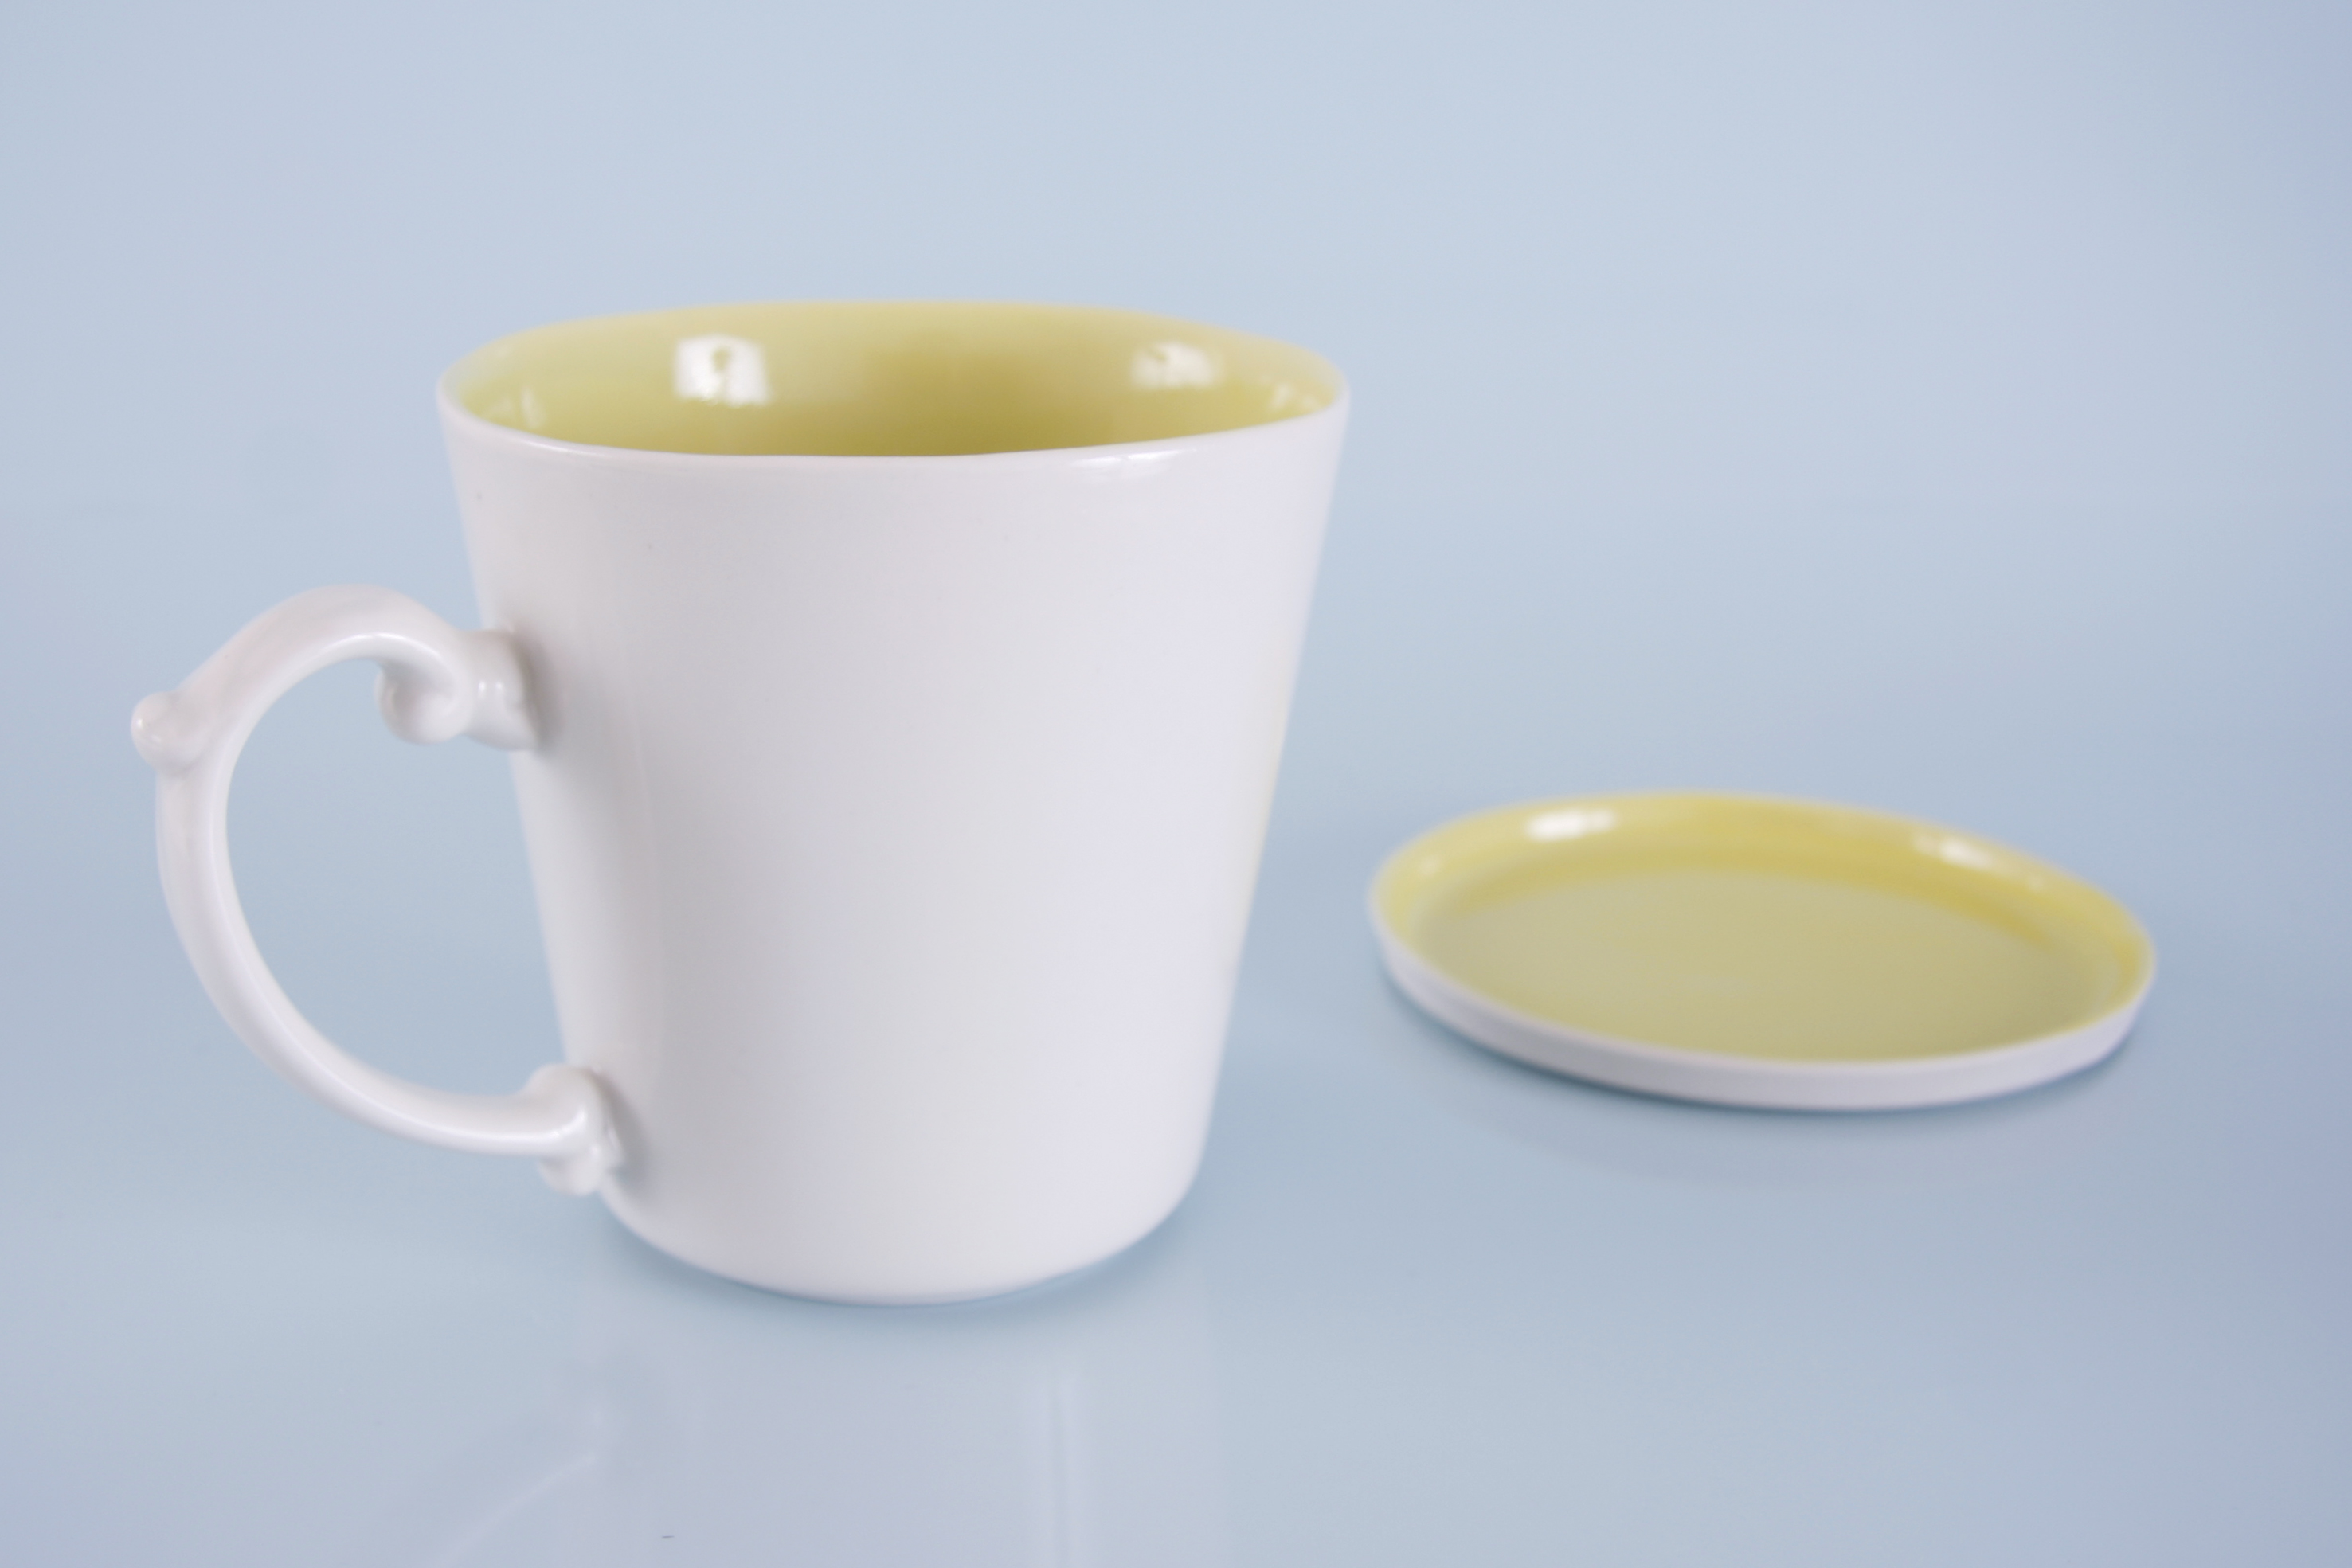 in basic white with yellow glaze inside